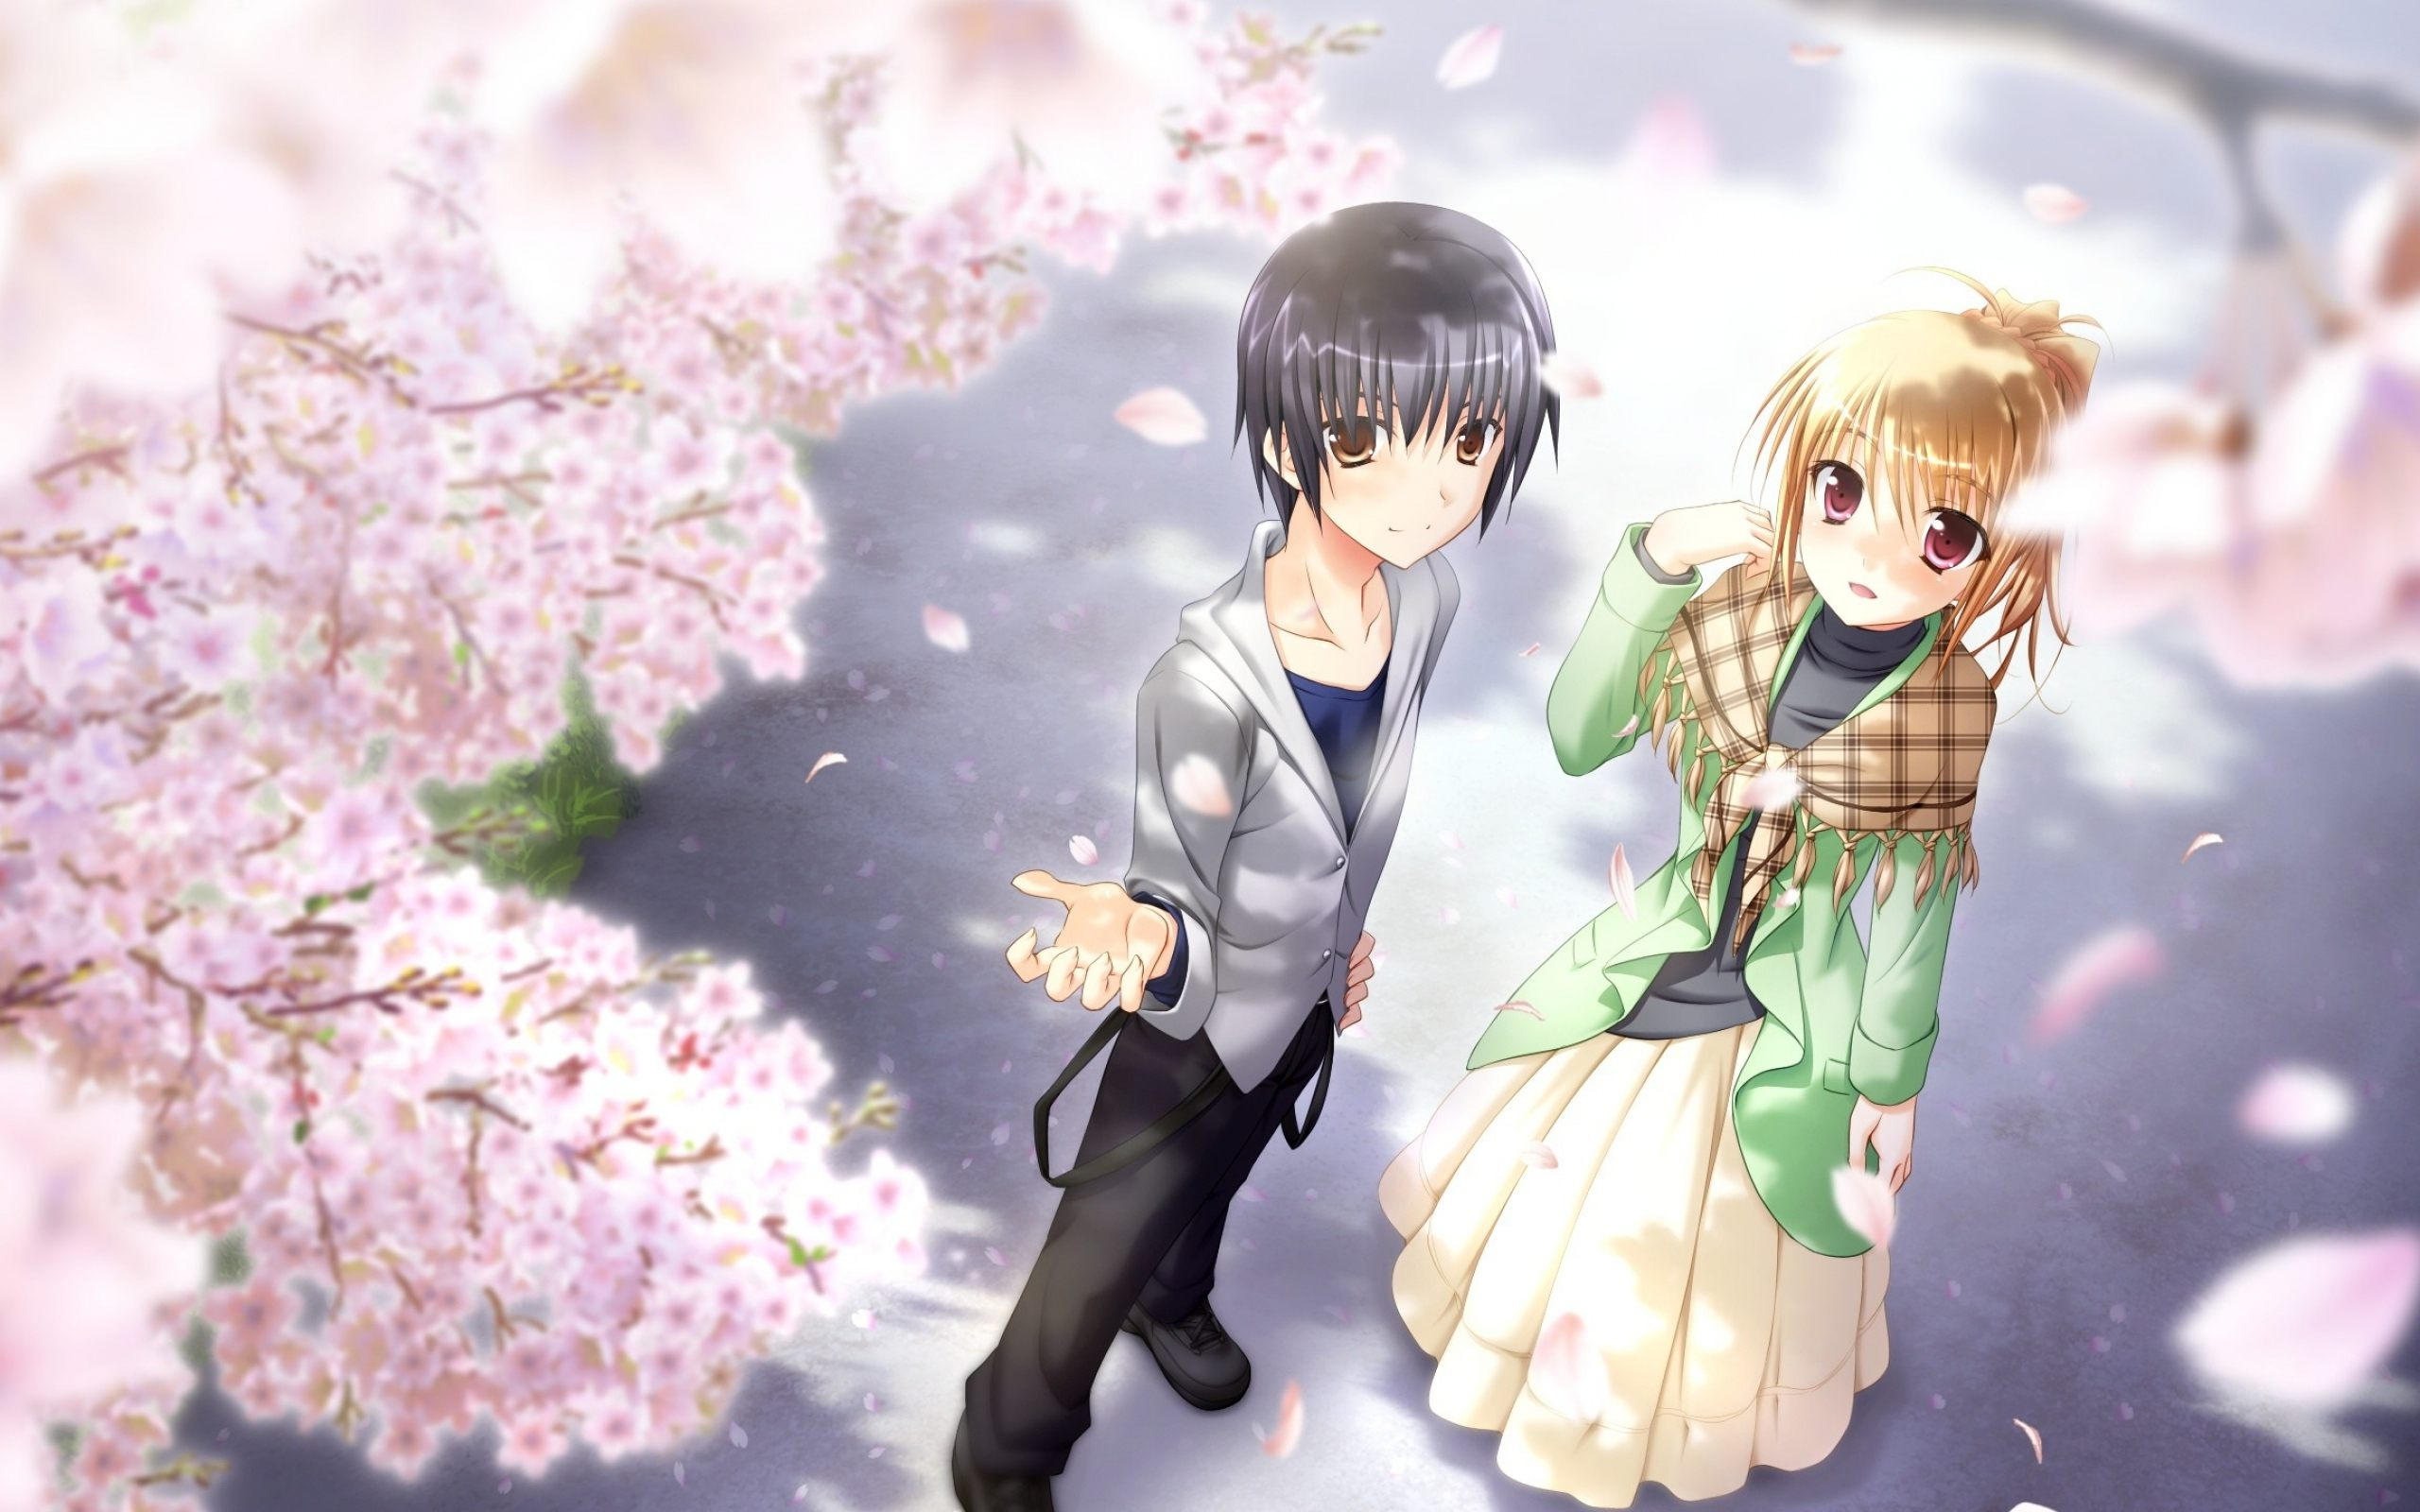 Download Anime Couple Wallpaper 240x320 Wallpoper Pictures 2560x1600